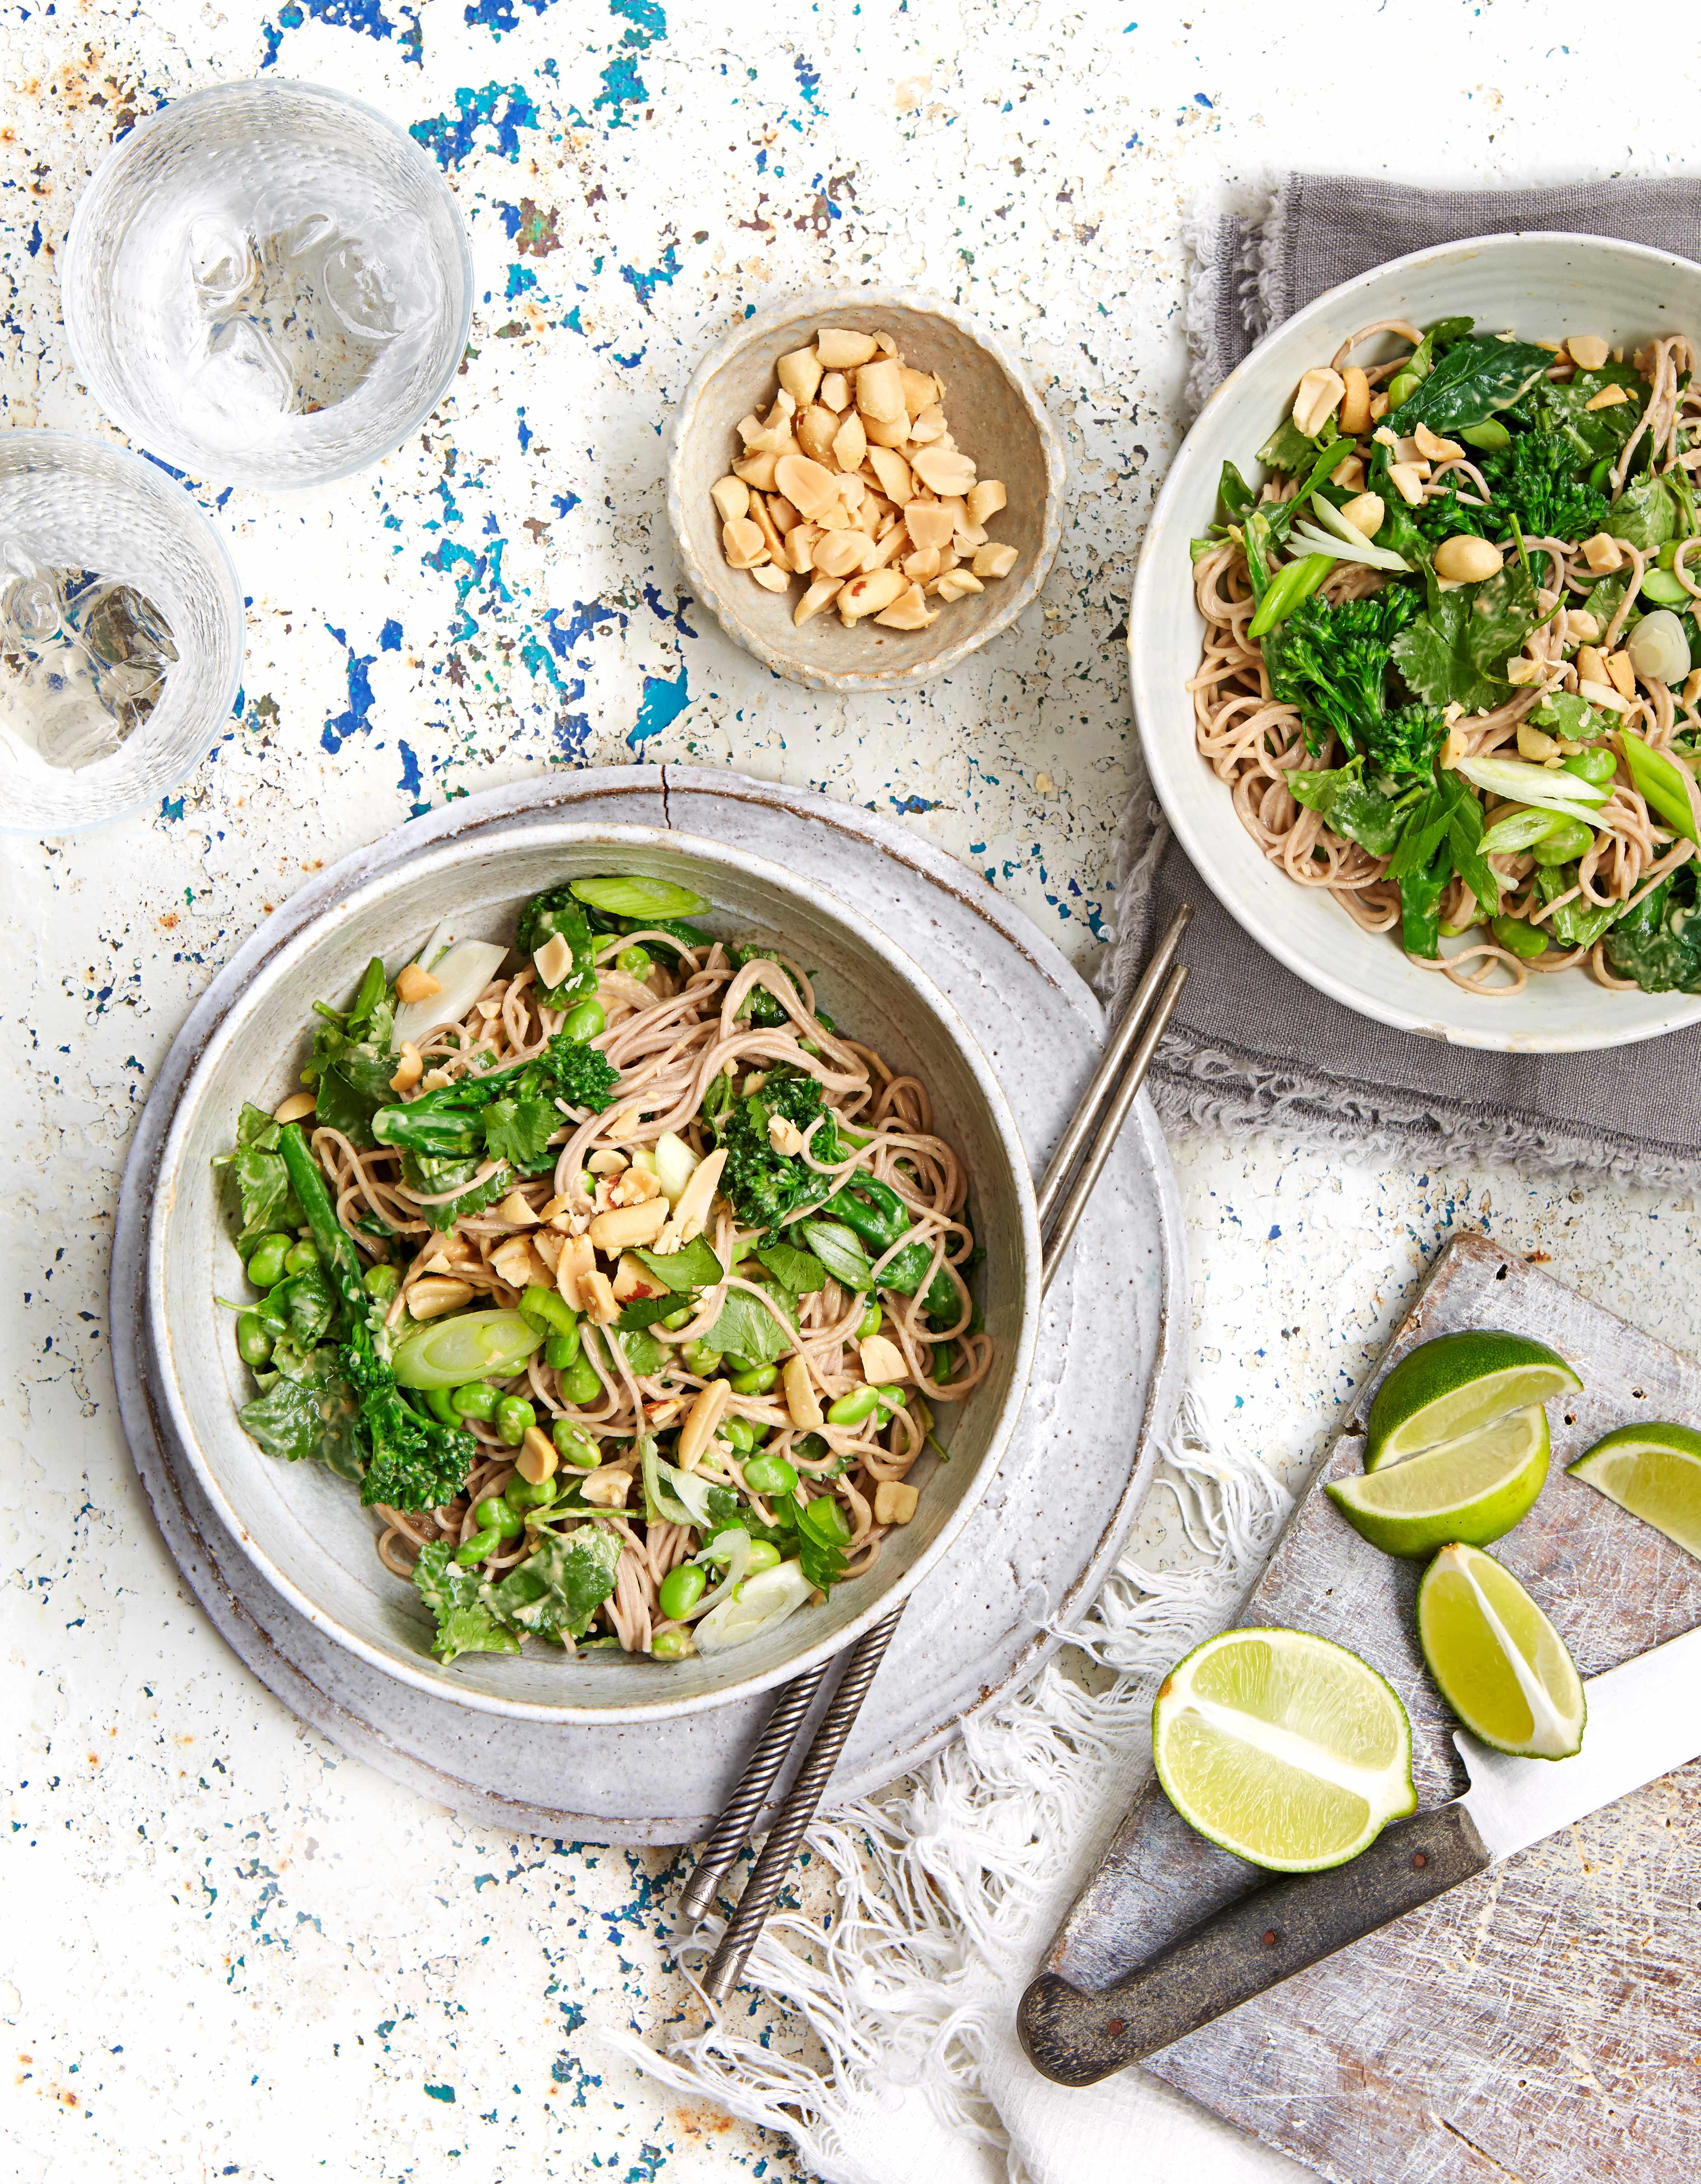 Soba Noodle Recipe with Broccoli and Peanuts